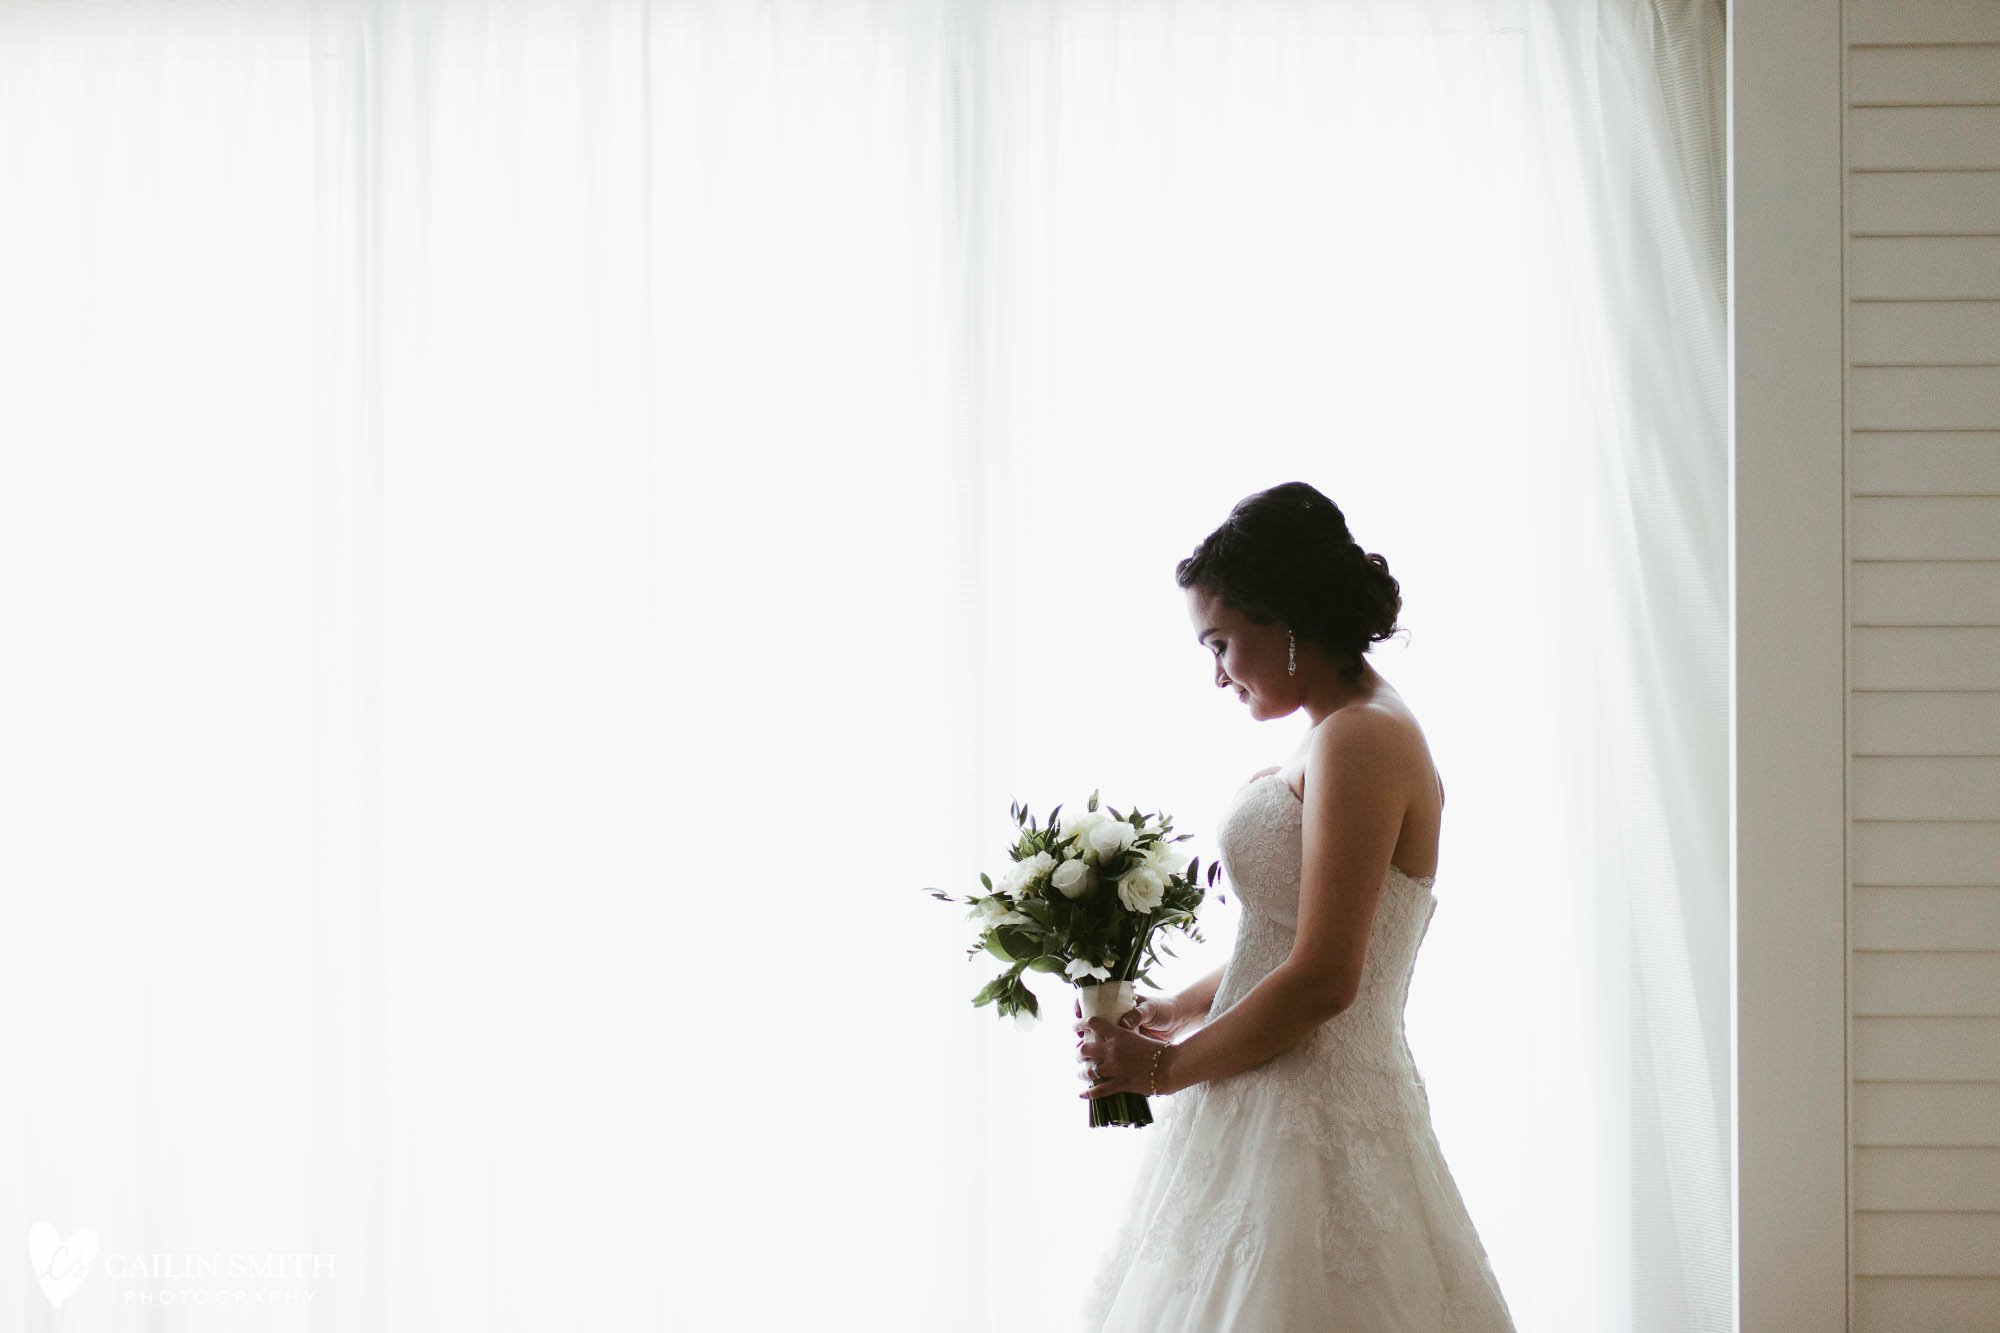 Hallie_Ari_Ritz_Carlton_Amelia_Island_Wedding_Photography_0015.jpg